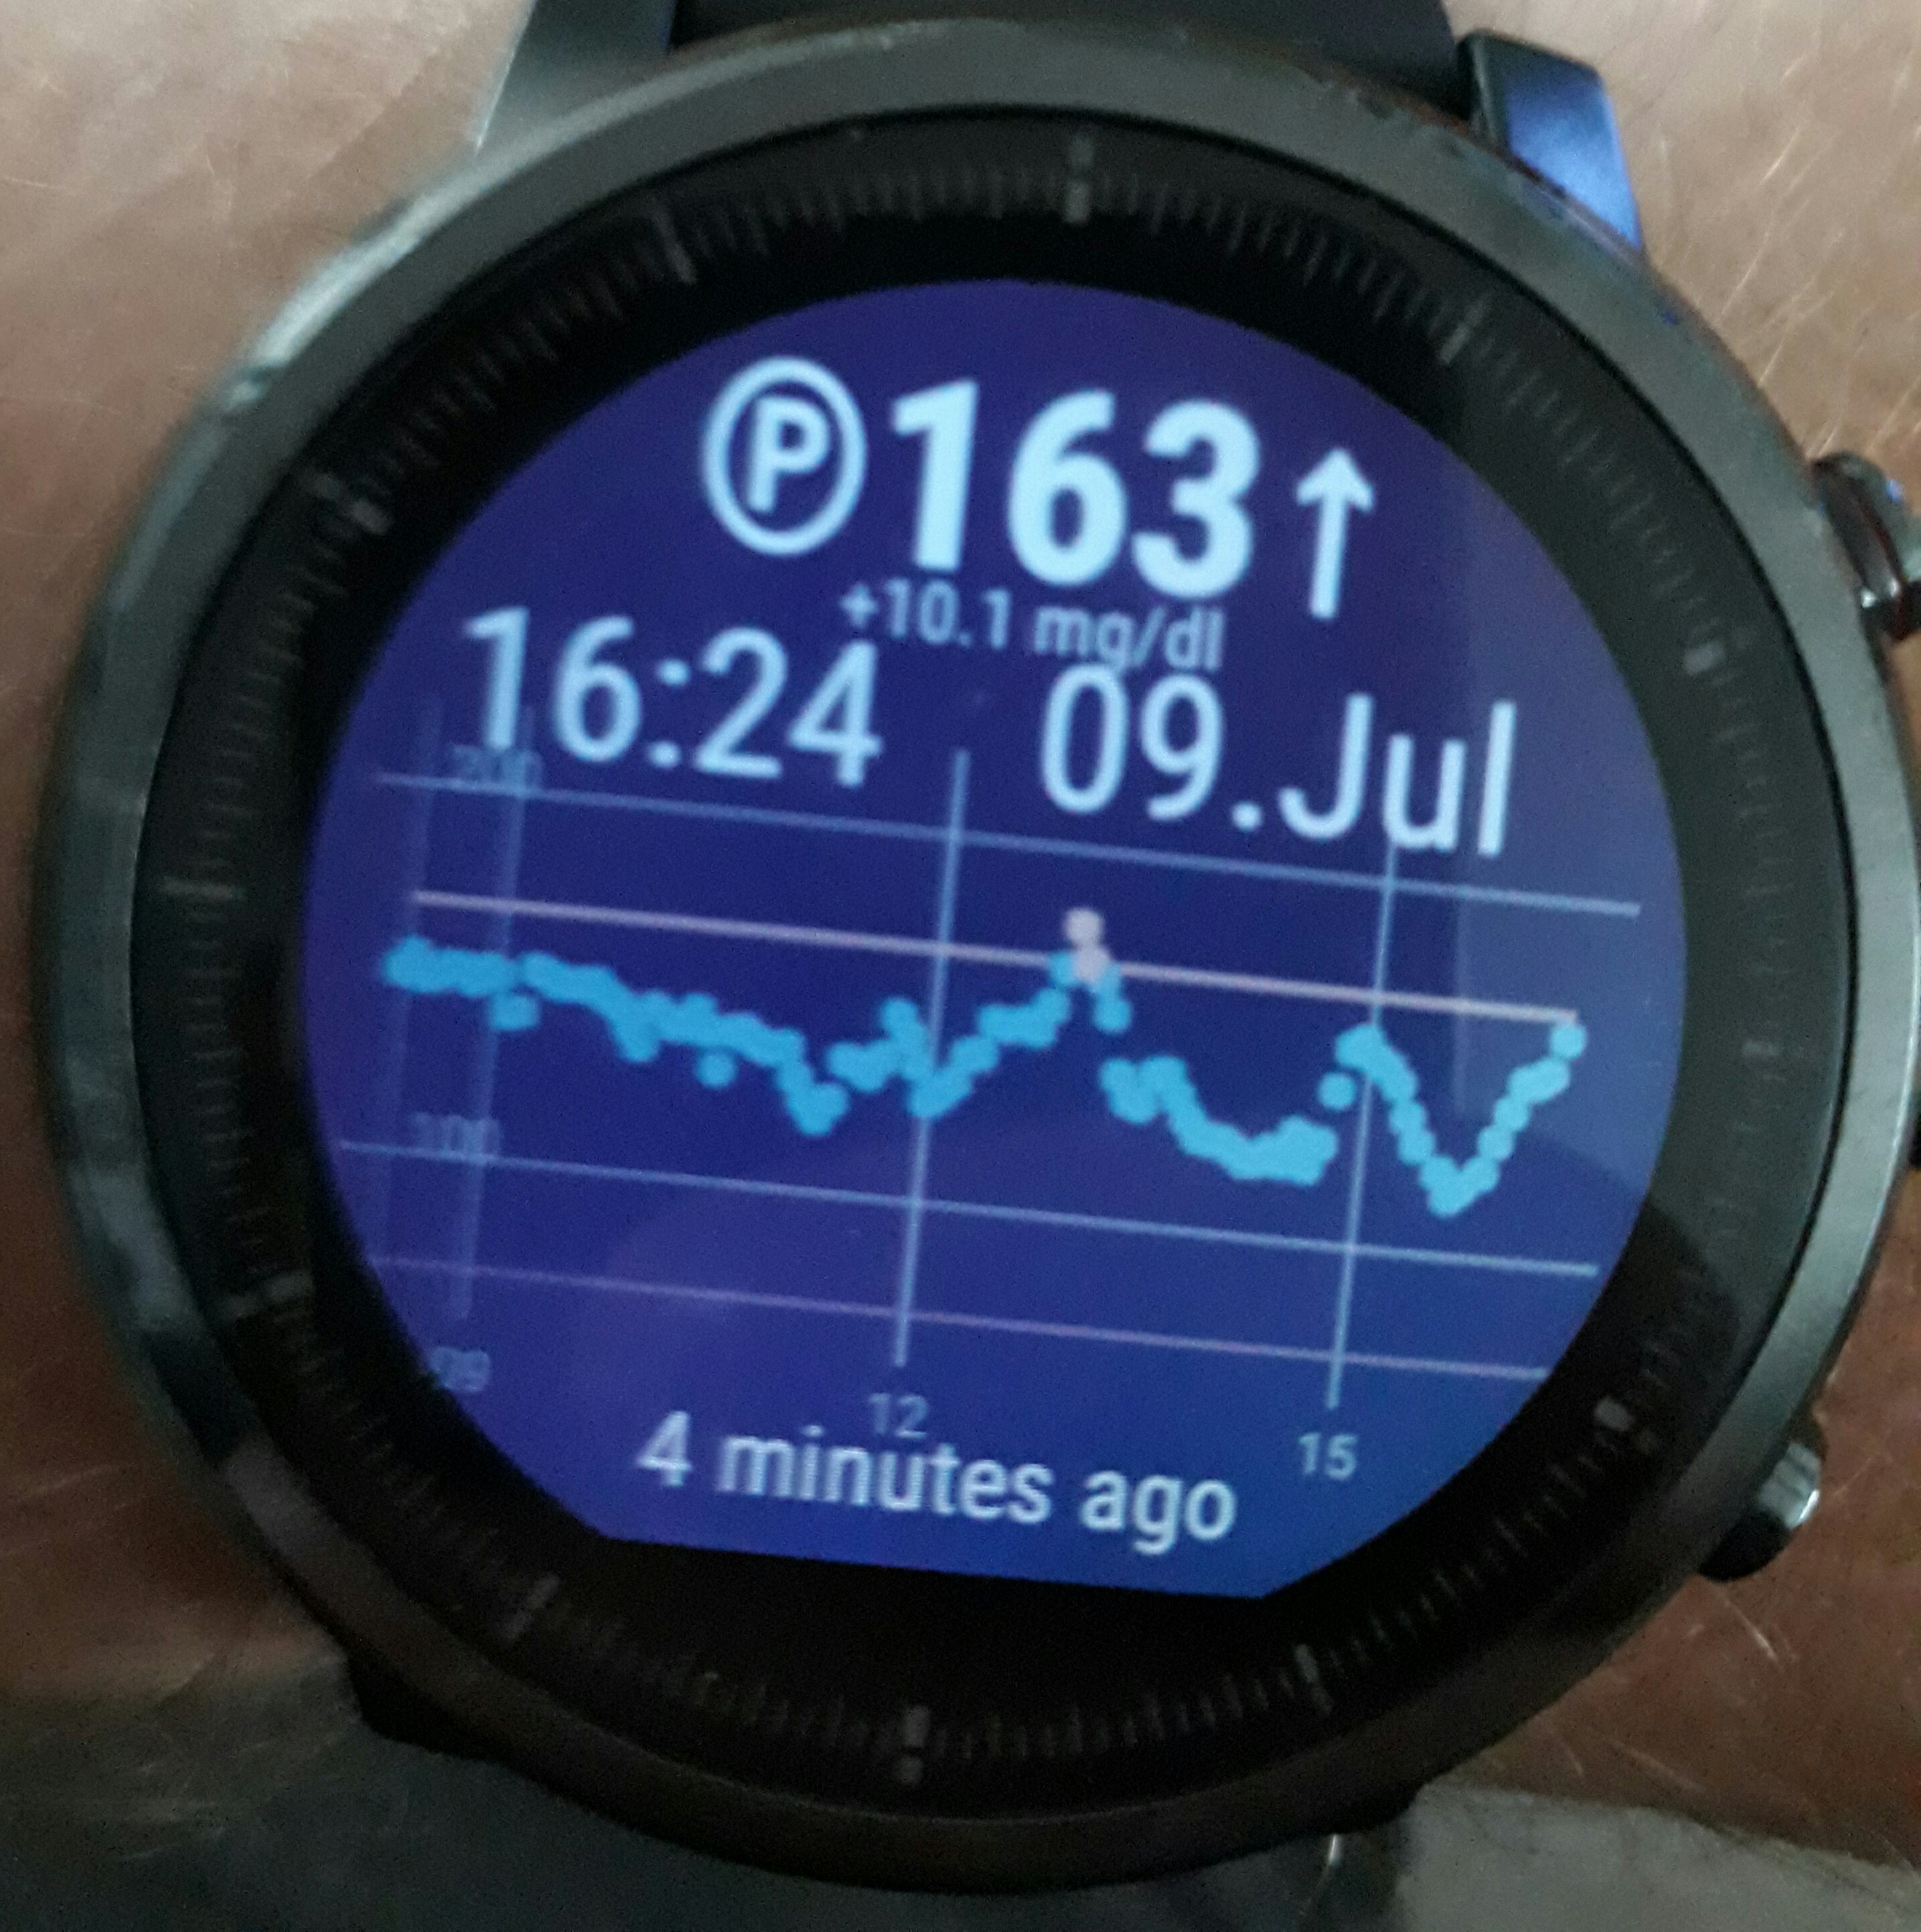 Feature Request: Smart Watch integration for Amazfit Pace